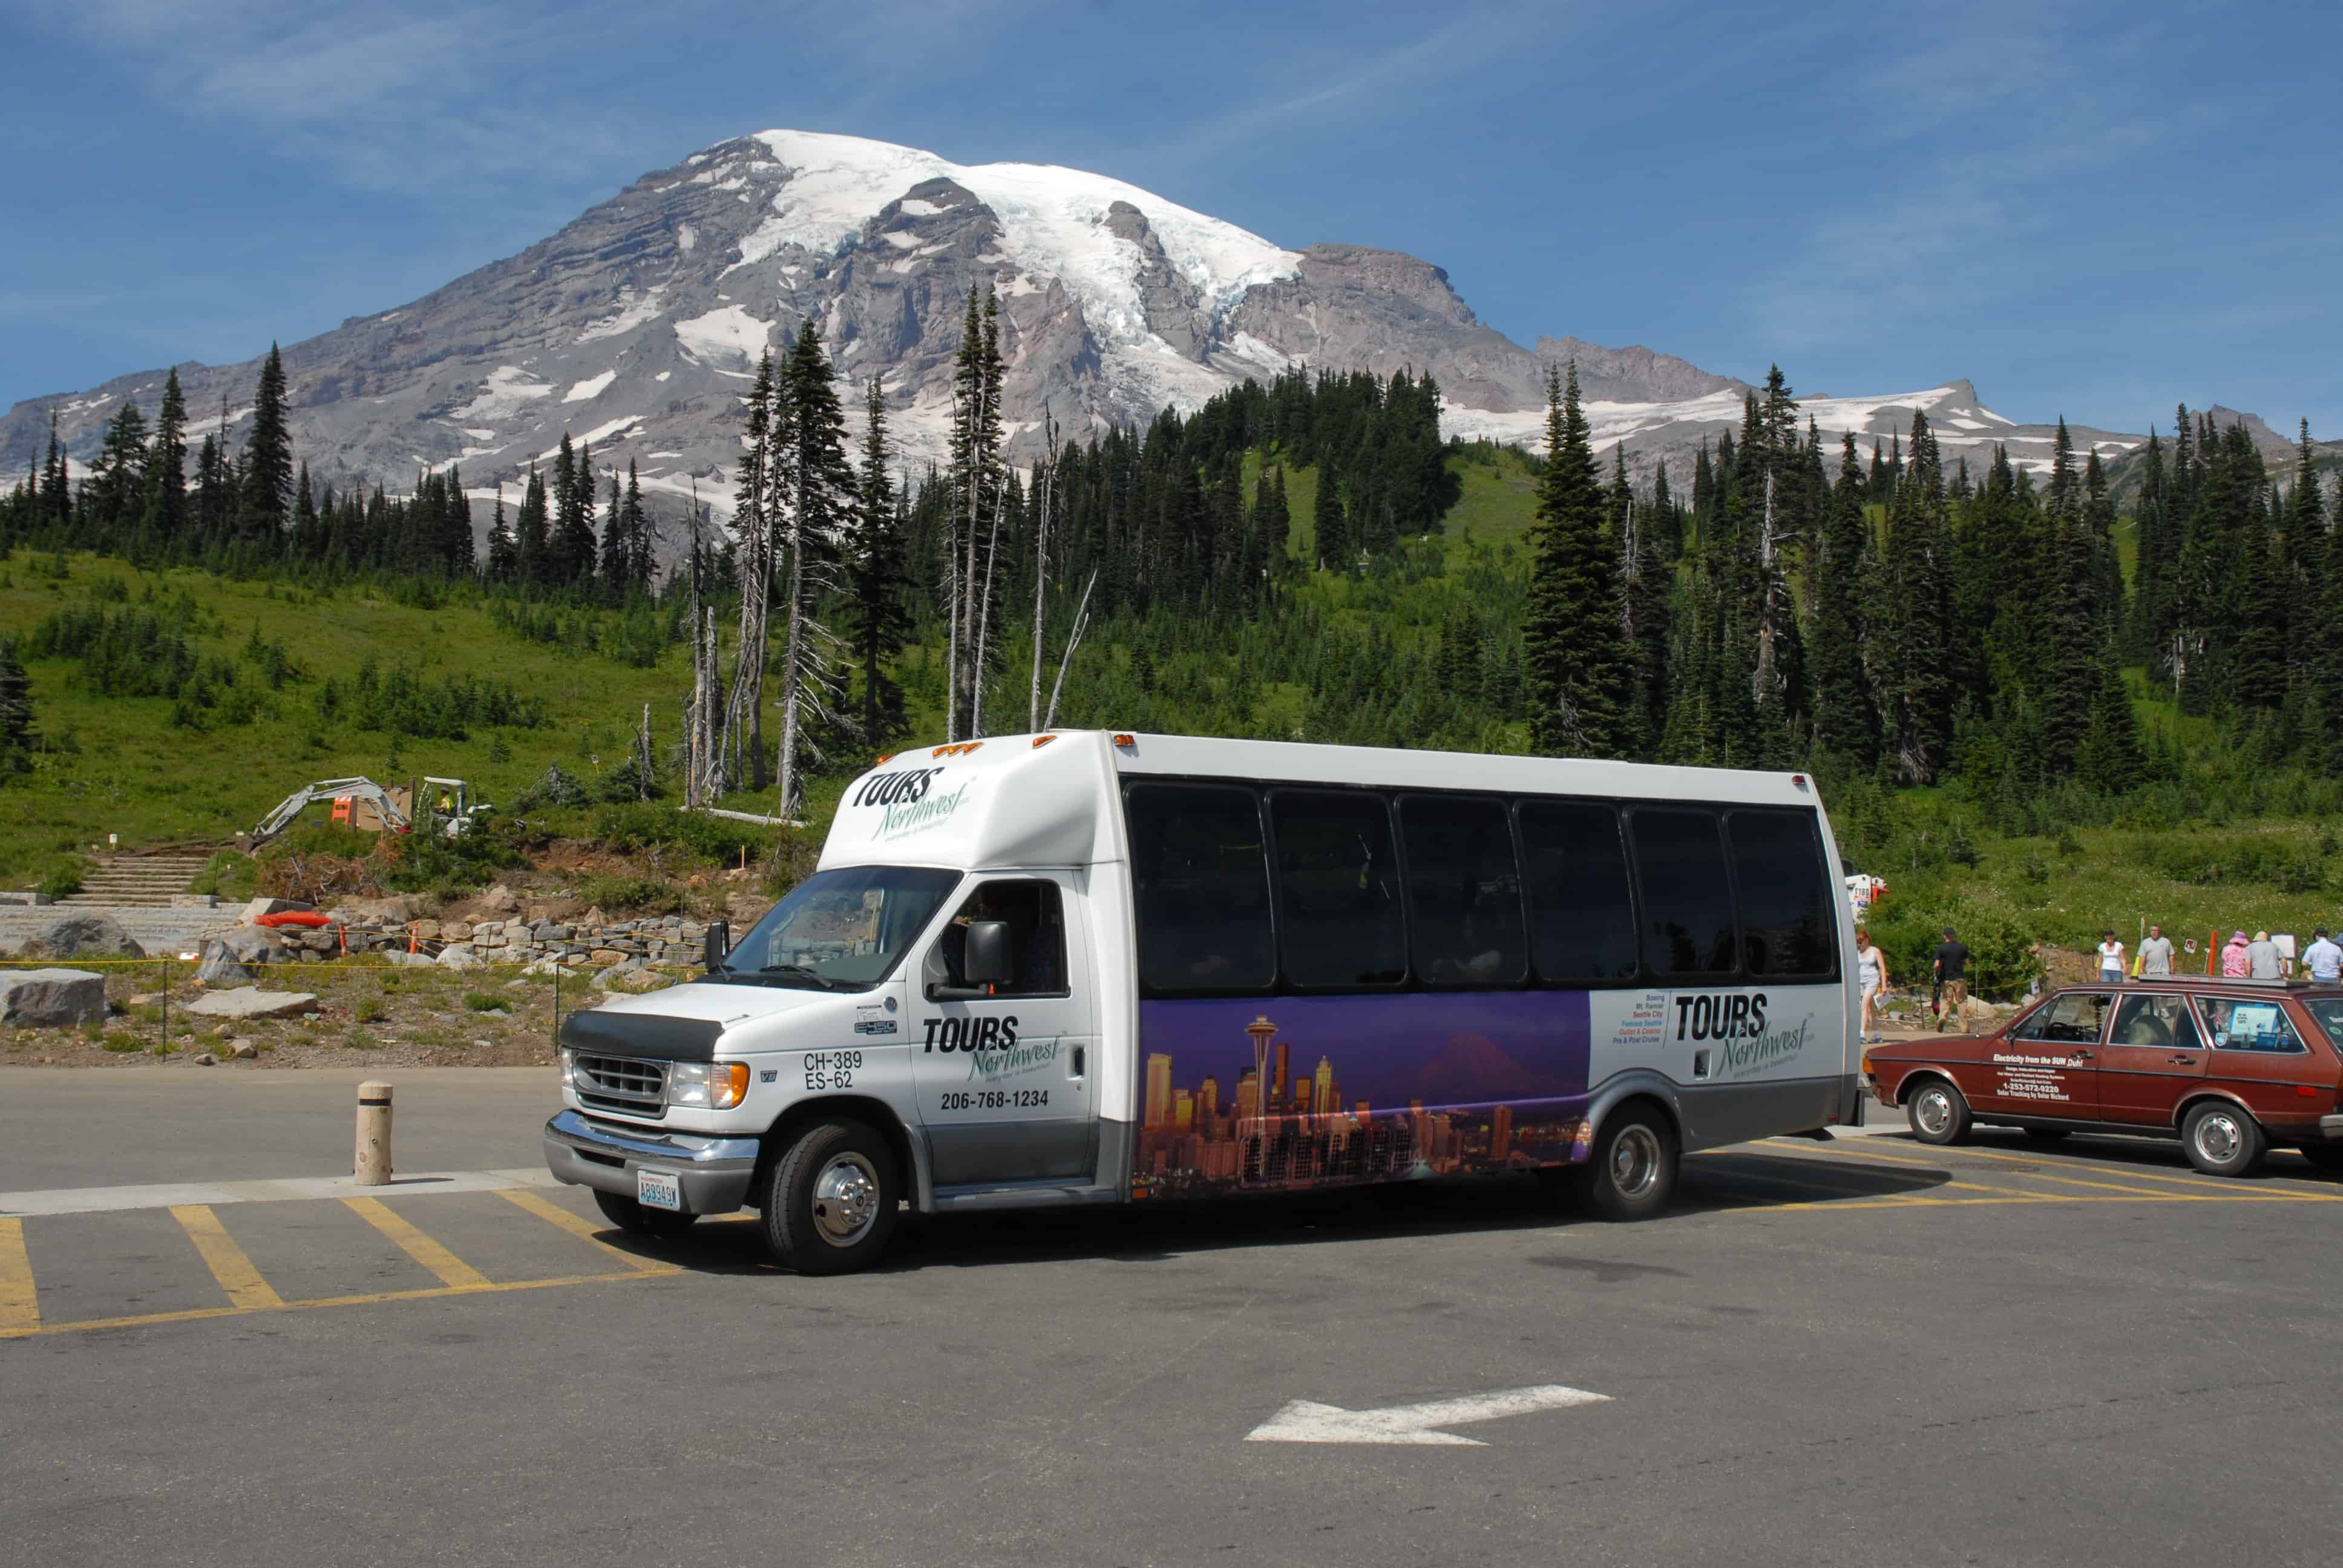 Tours Northwest tour bus at Mt Rainier